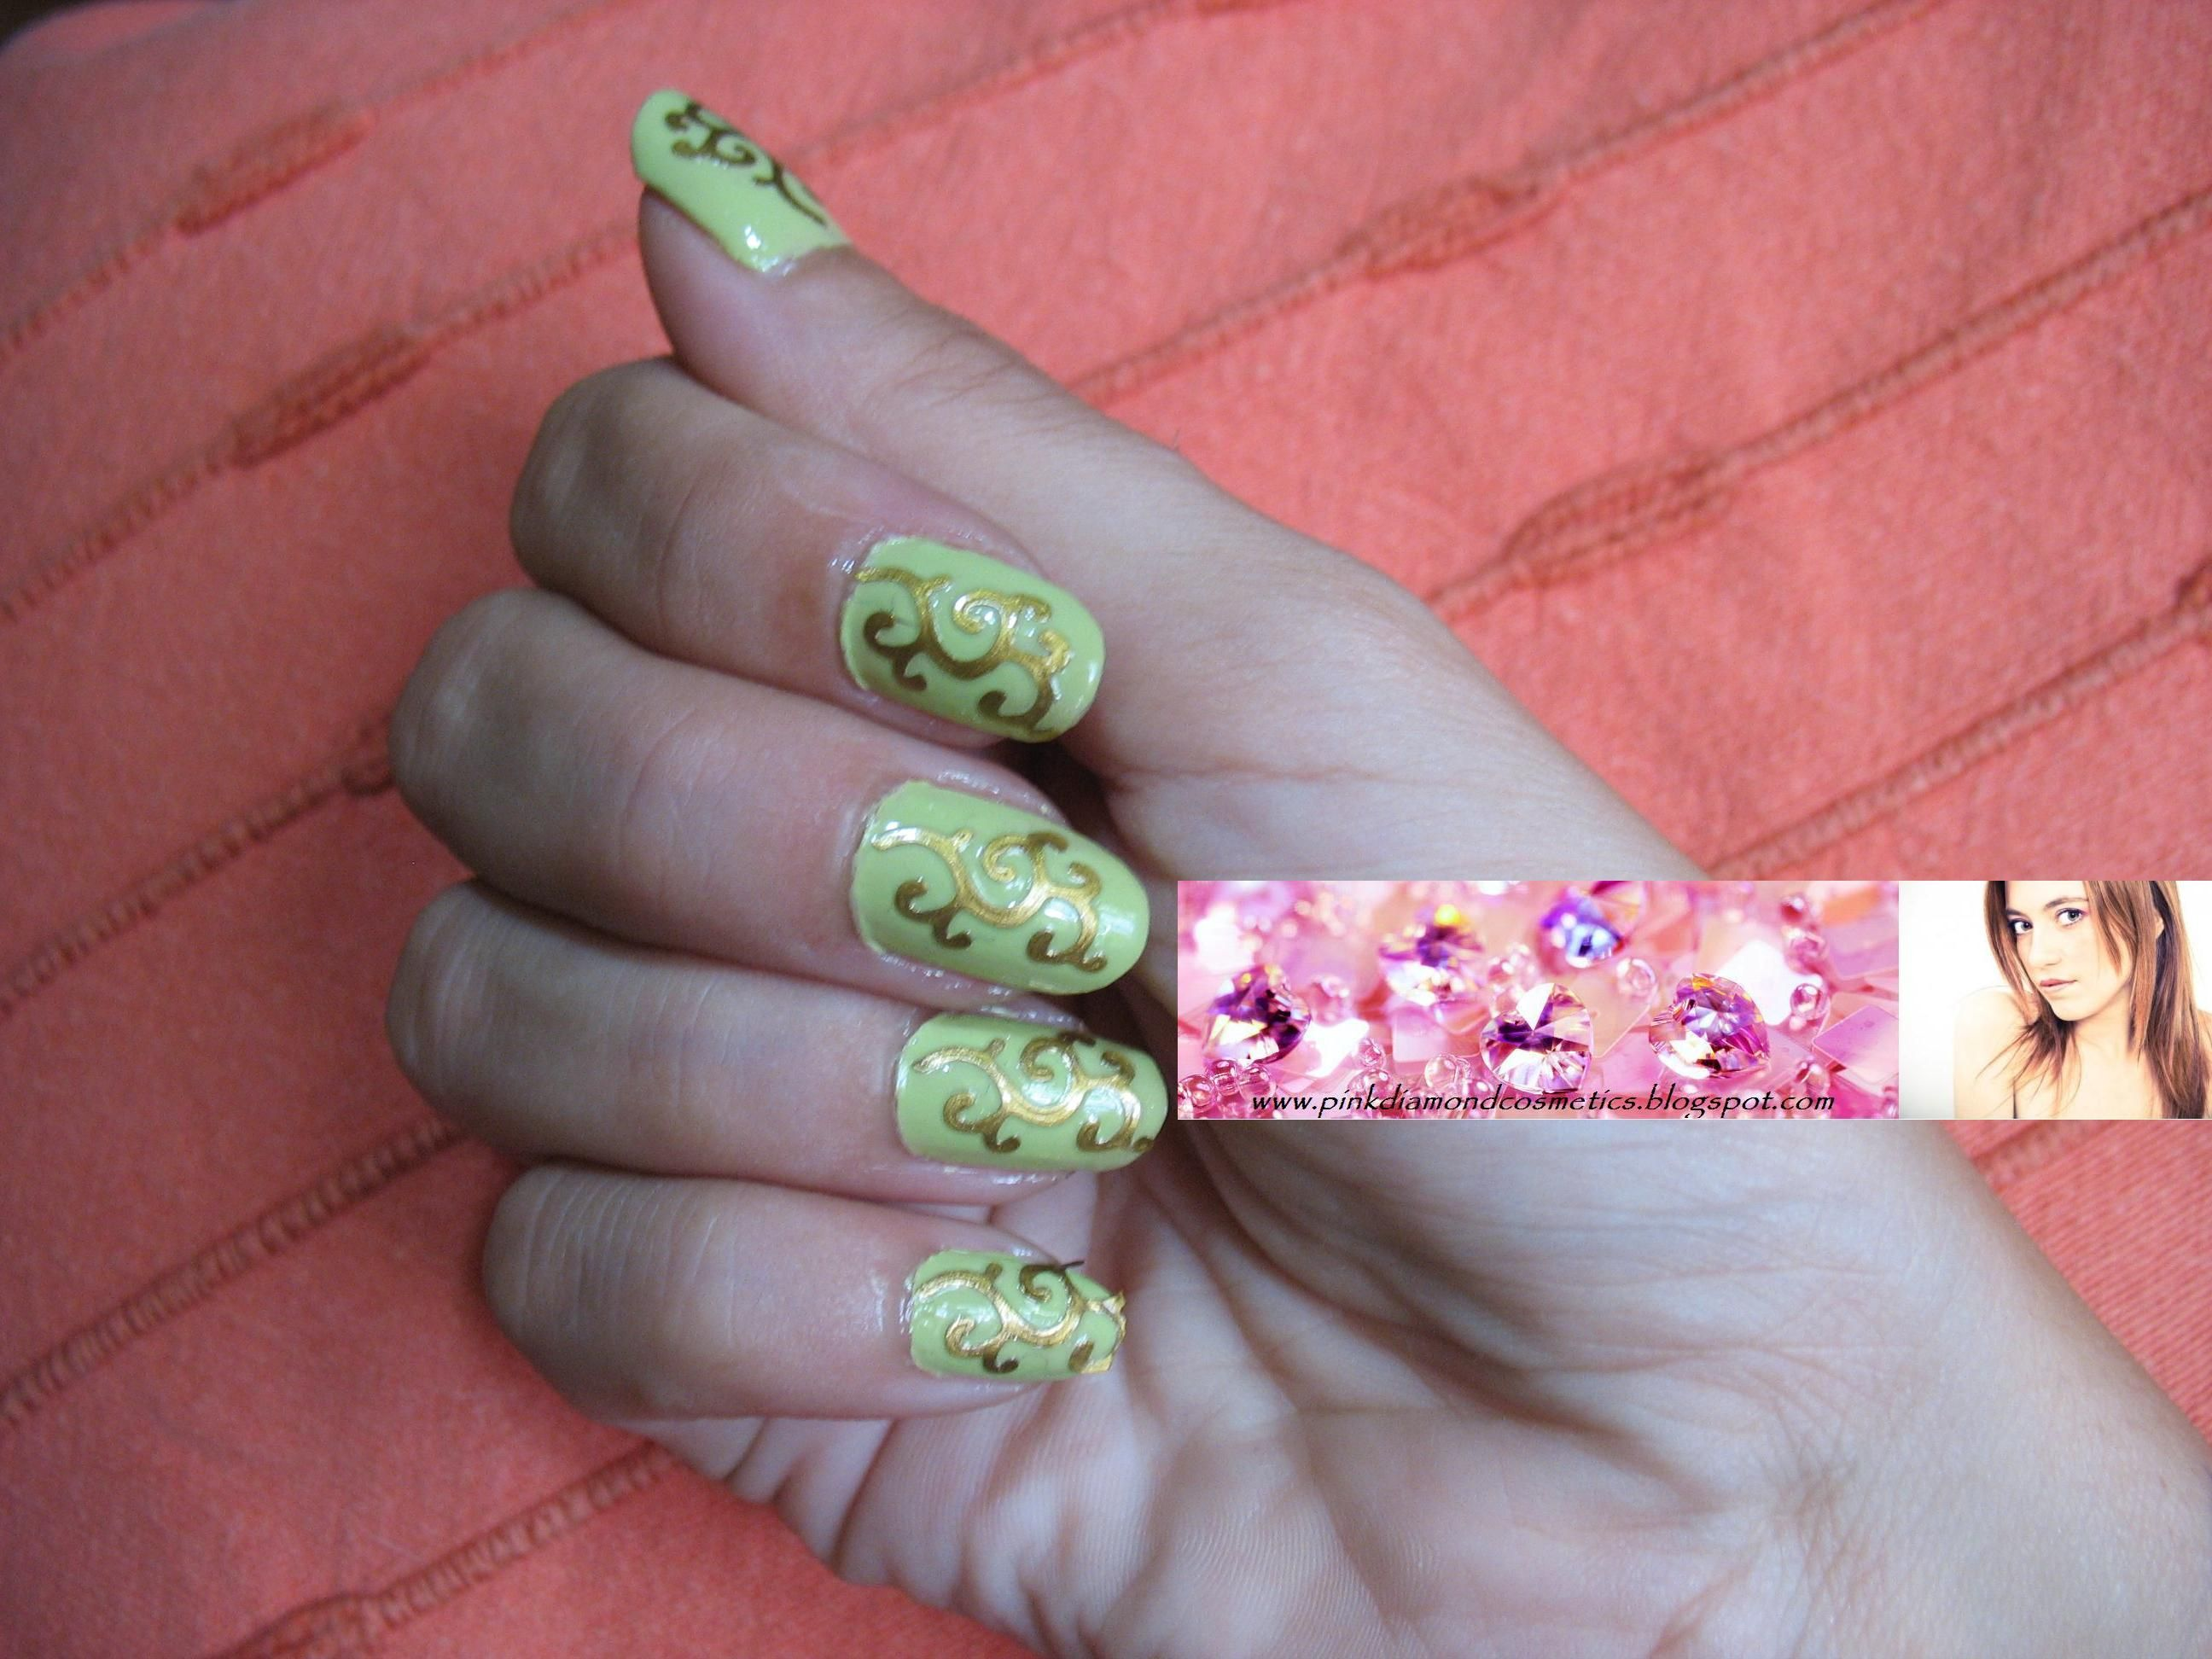 New Participants In The Contest Nail Art 1 Talent Week Of October